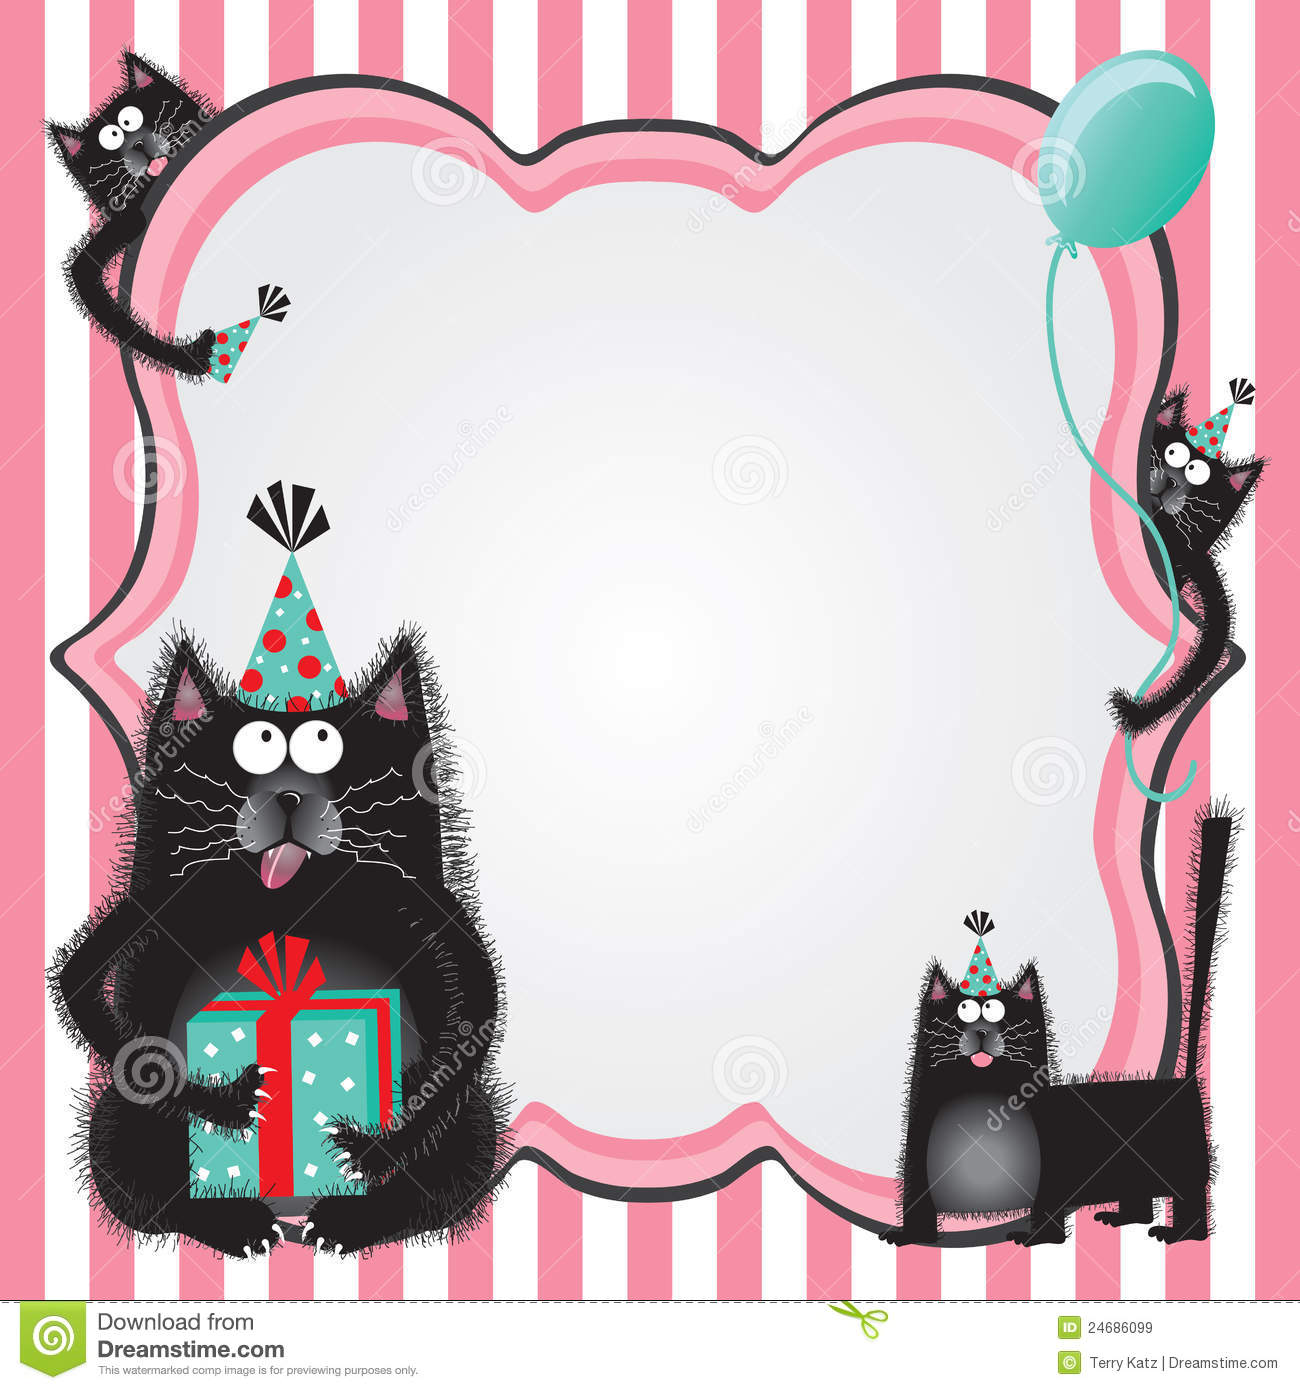 cat birthday invitation templates ; kitty-cat-birthday-party-invitation-24686099